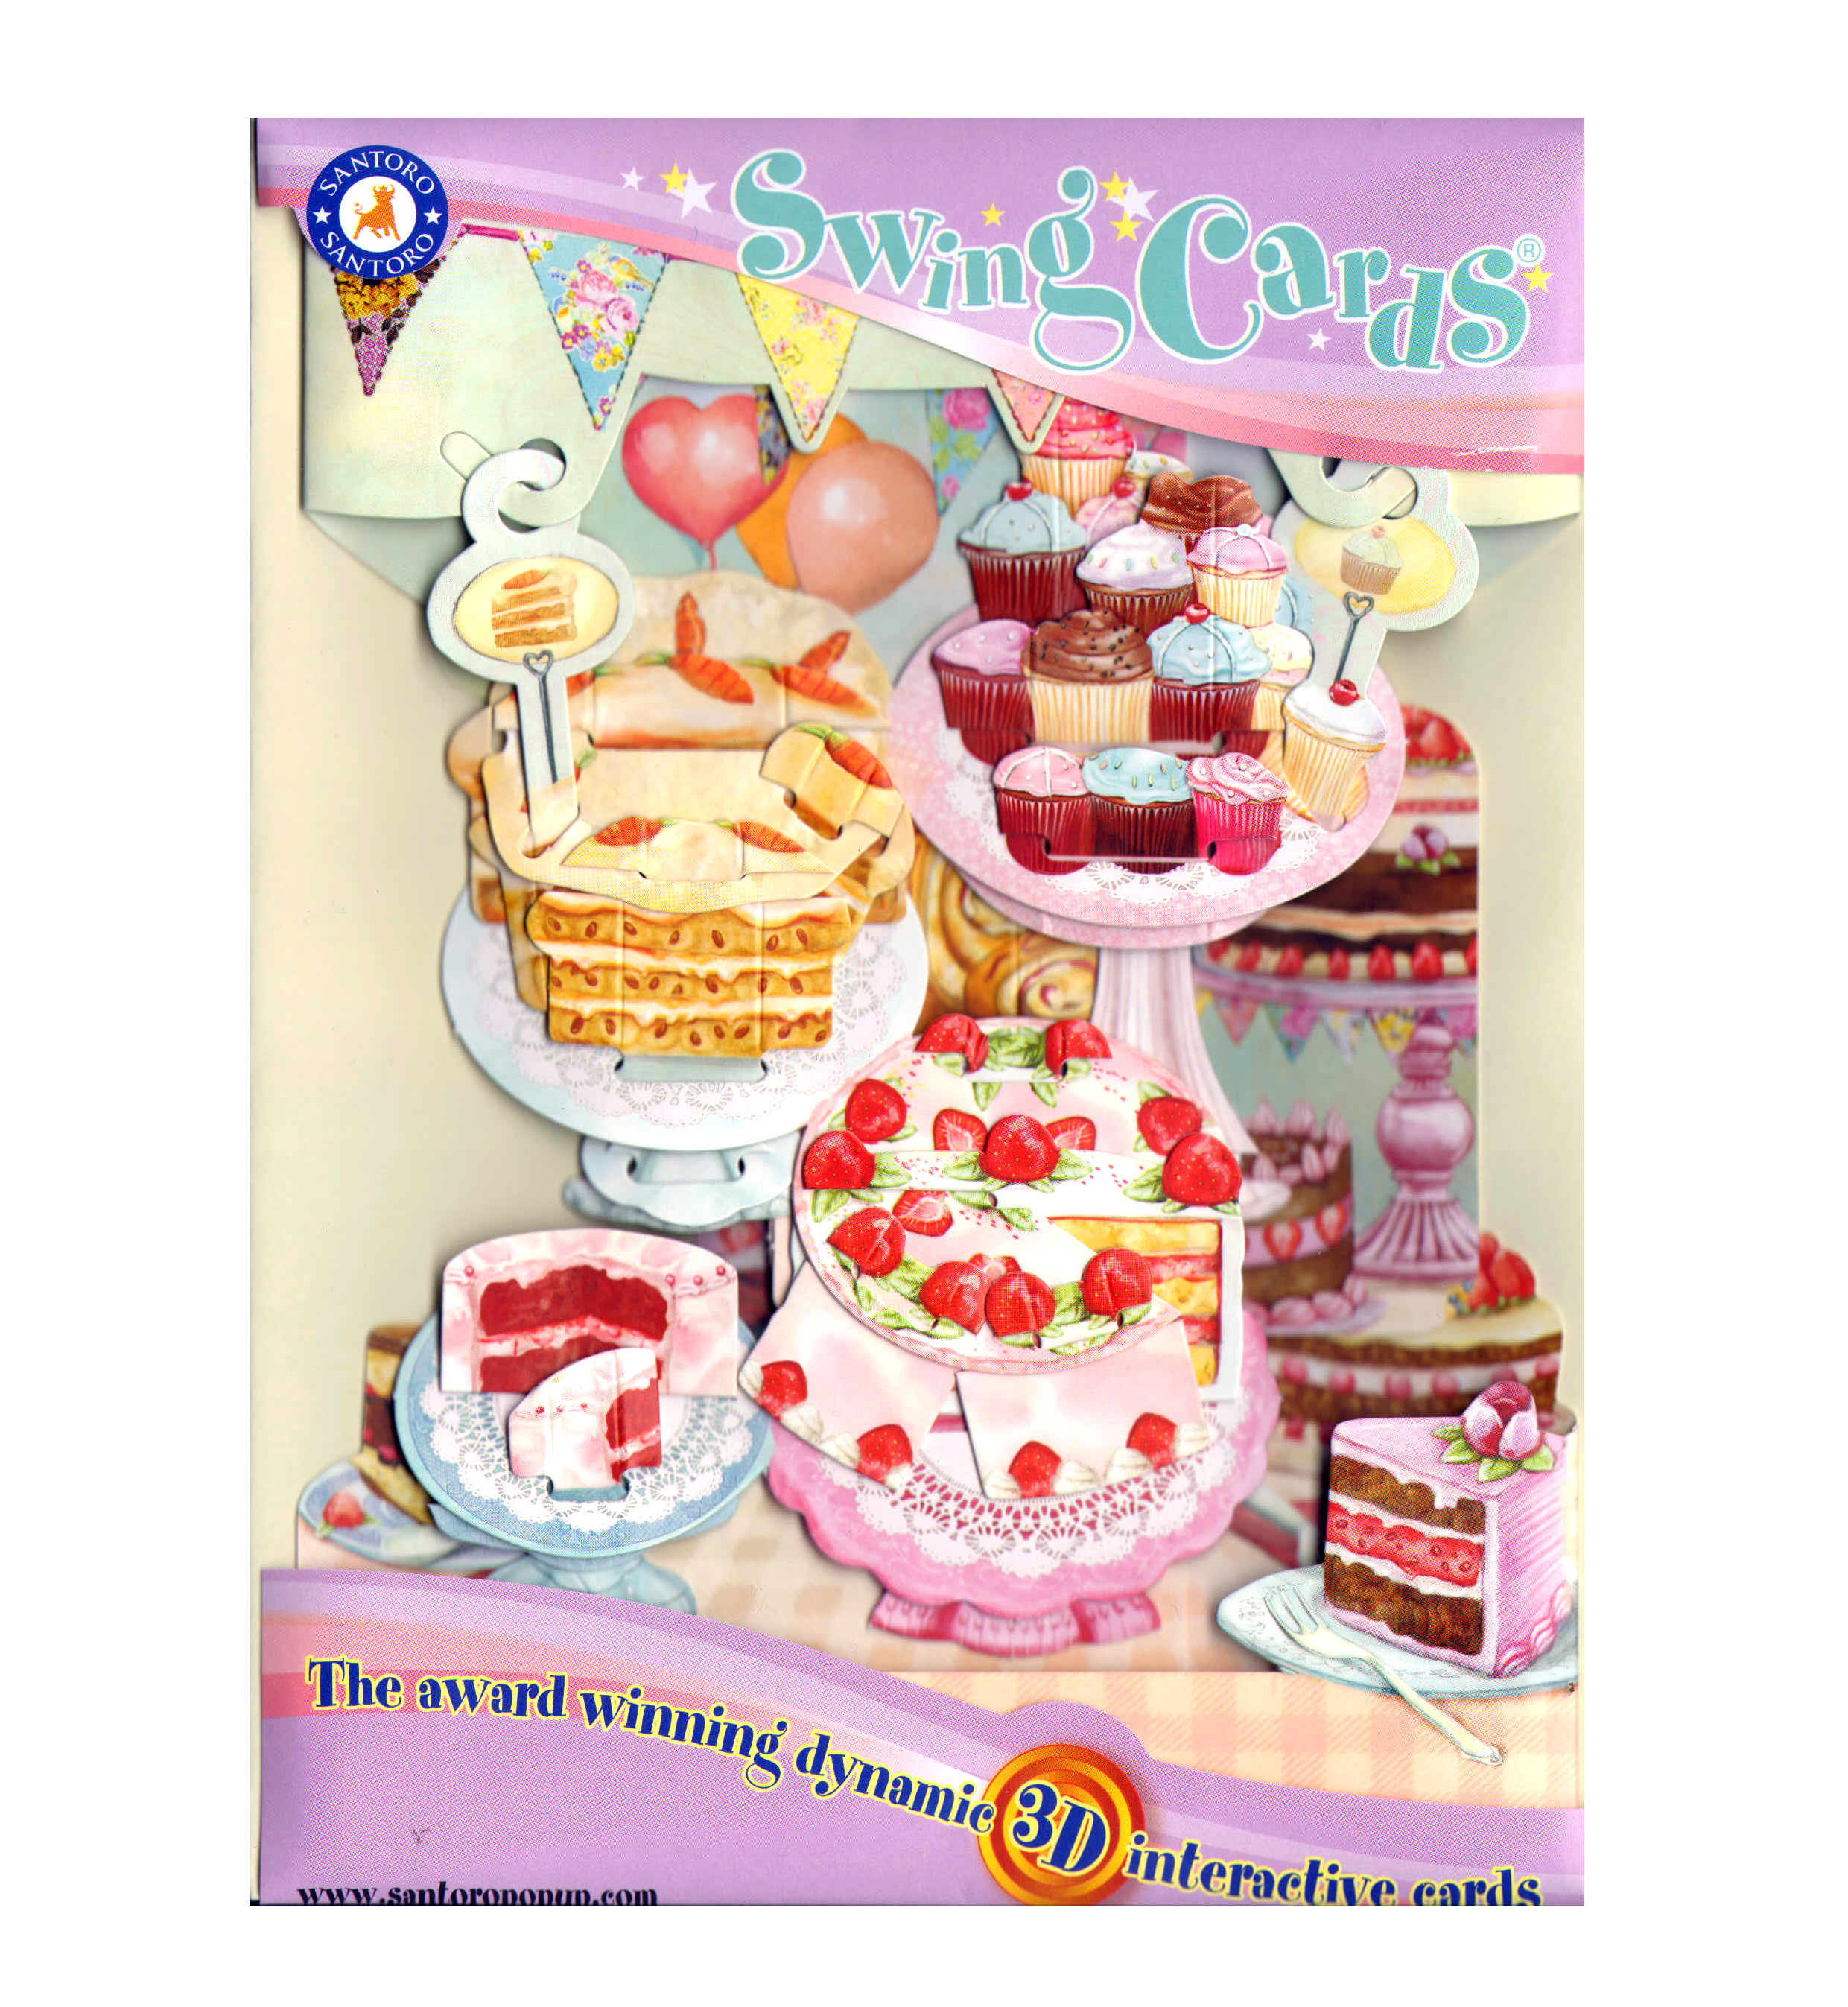 Home baked cakes swing card award winning dynamic 3d interactive home baked cakes swing card award winning dynamic 3d interactive greetings card kristyandbryce Image collections